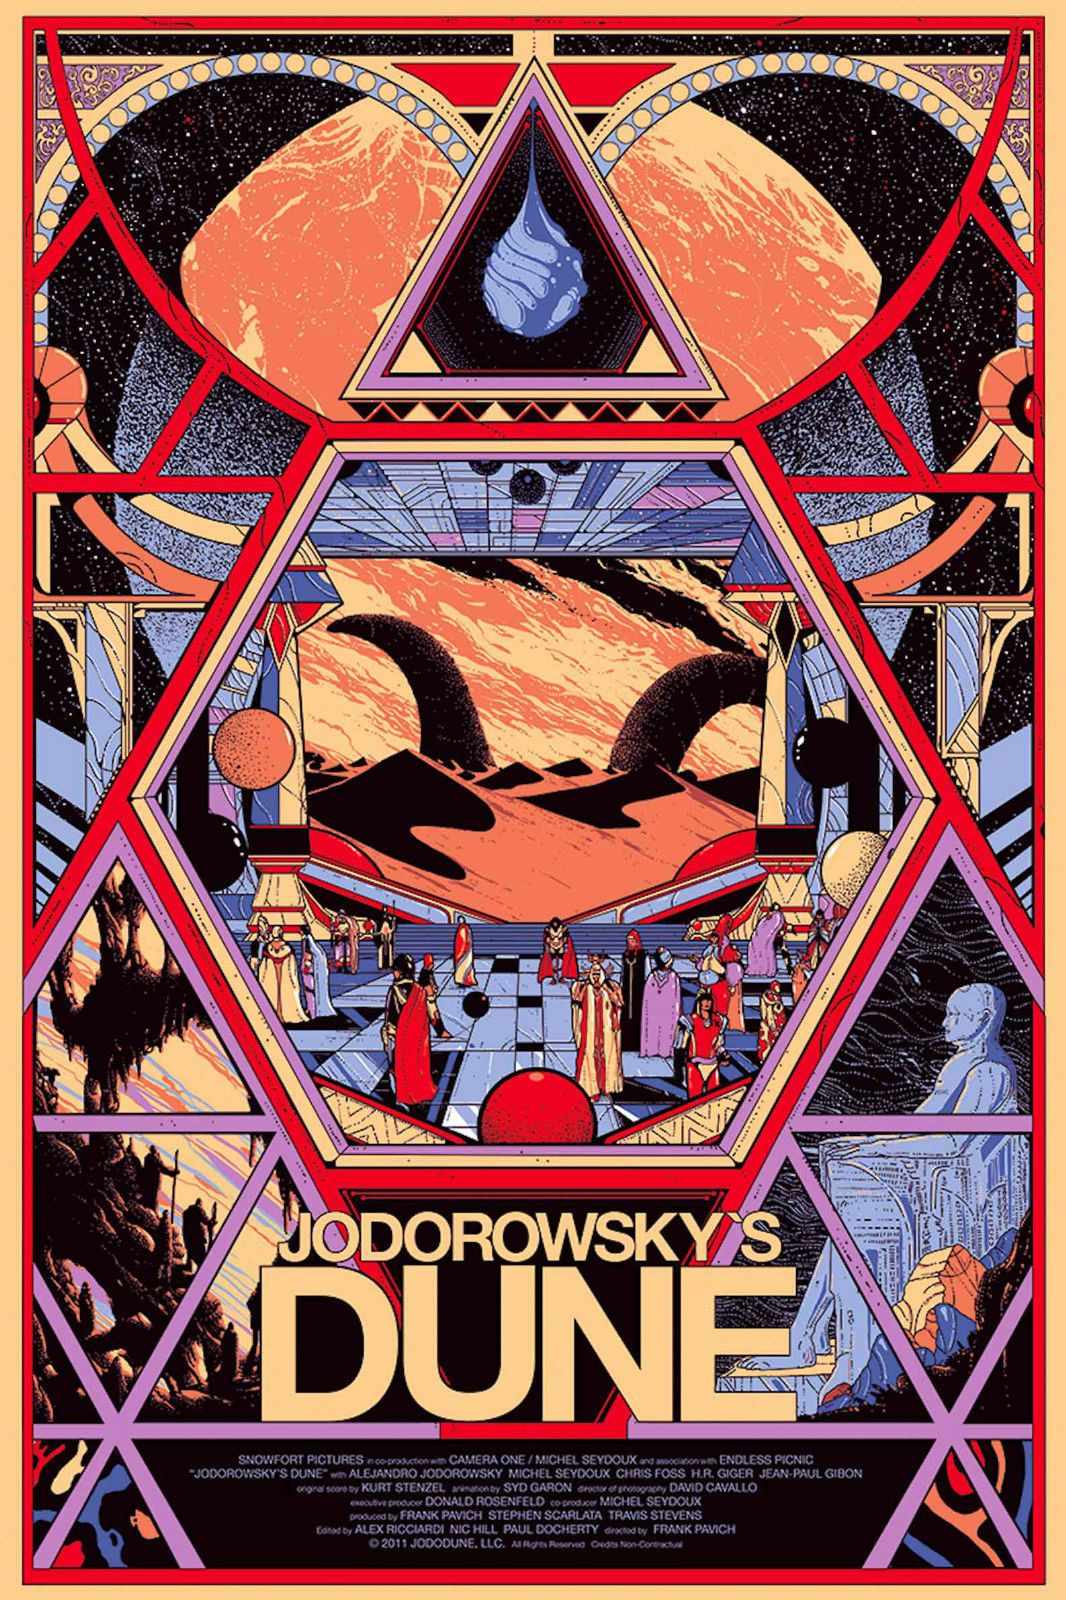 JODOROWSKY/'S DUNE MOVIE POSTER ART PRINT A4 A3 JDM01 BUY 2 GET 1 FREE!